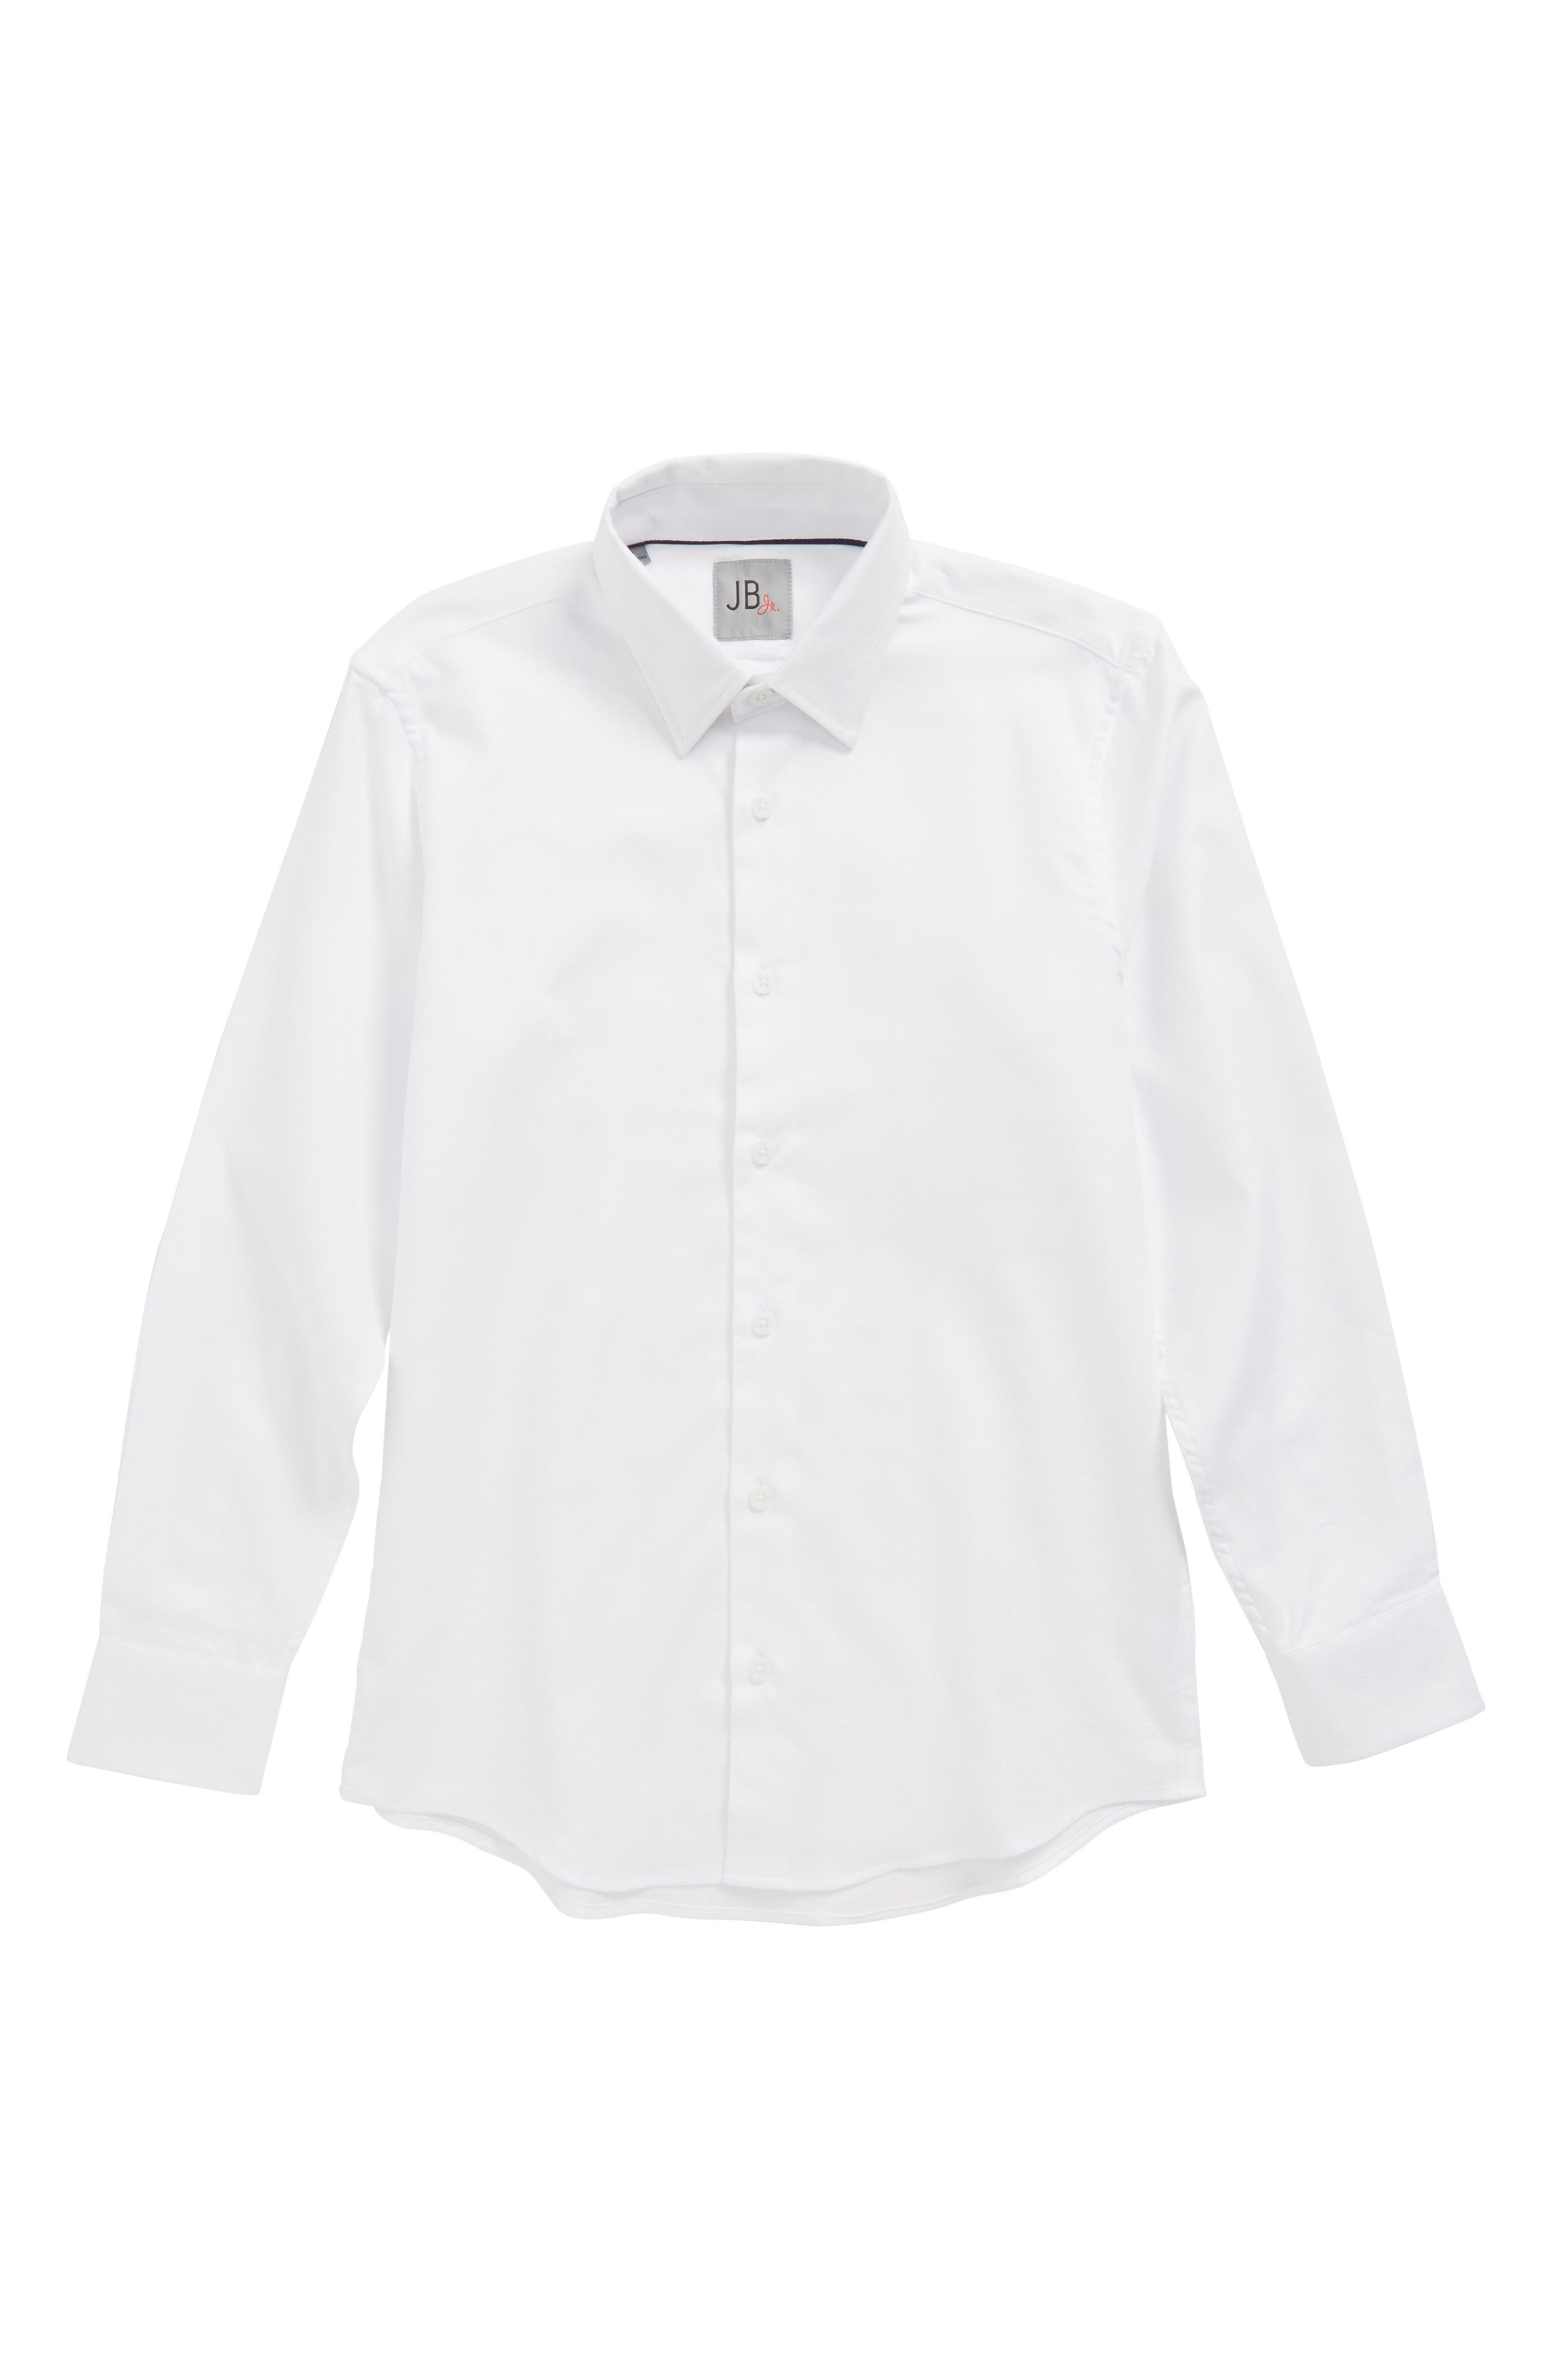 Alternate Image 1 Selected - JB Jr Textured Dress Shirt (Big Boys)